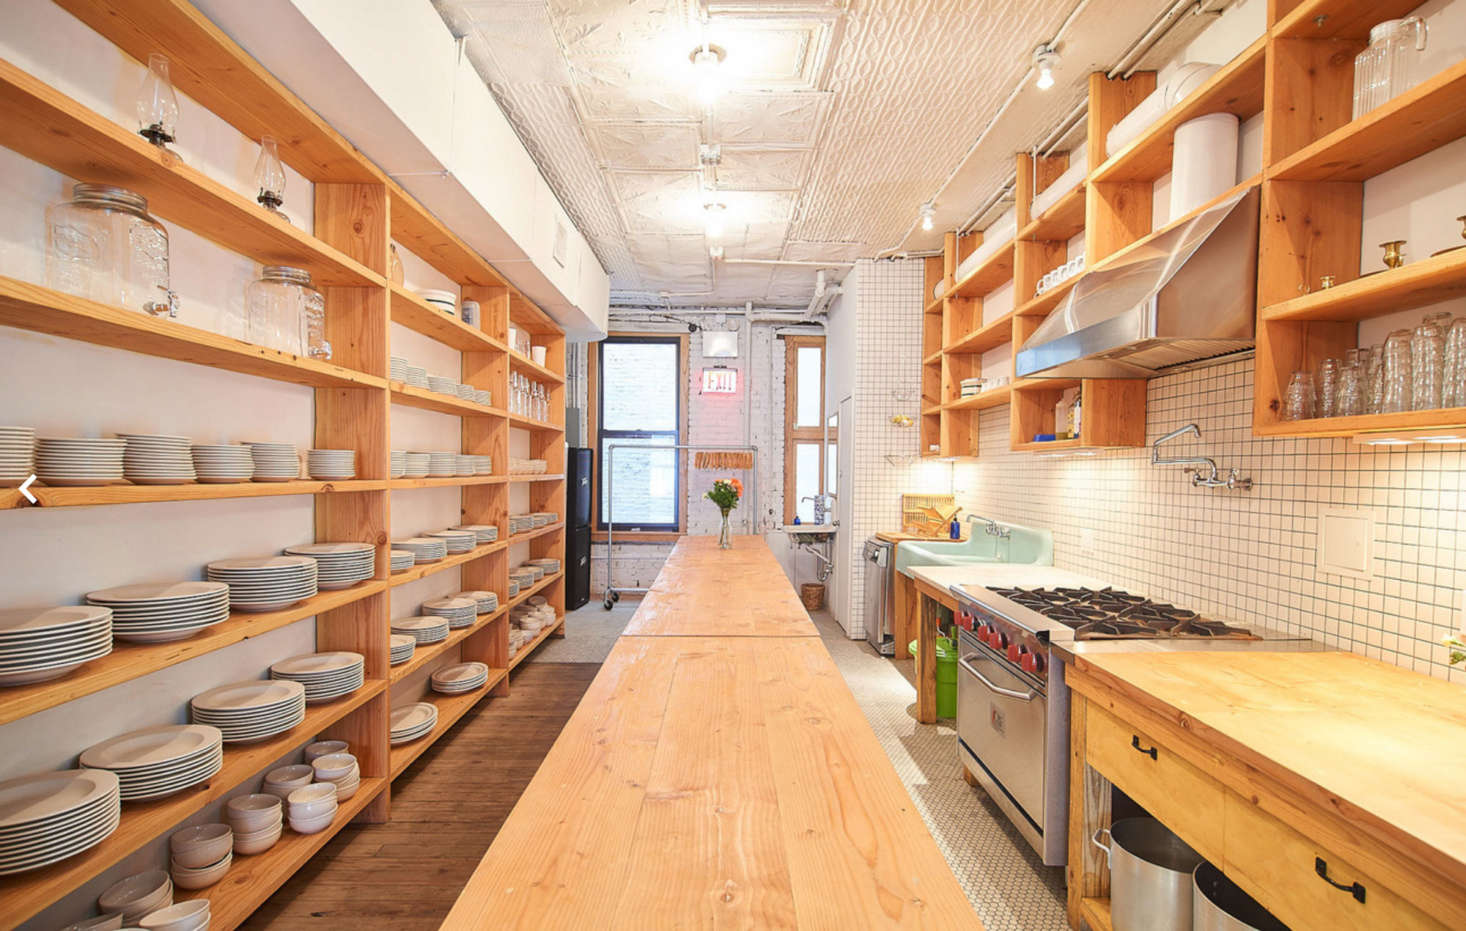 All the wood shelves and tables were designed by Poe. The built-ins in the kitchen are his homage to Donald Judd's bookshelves.